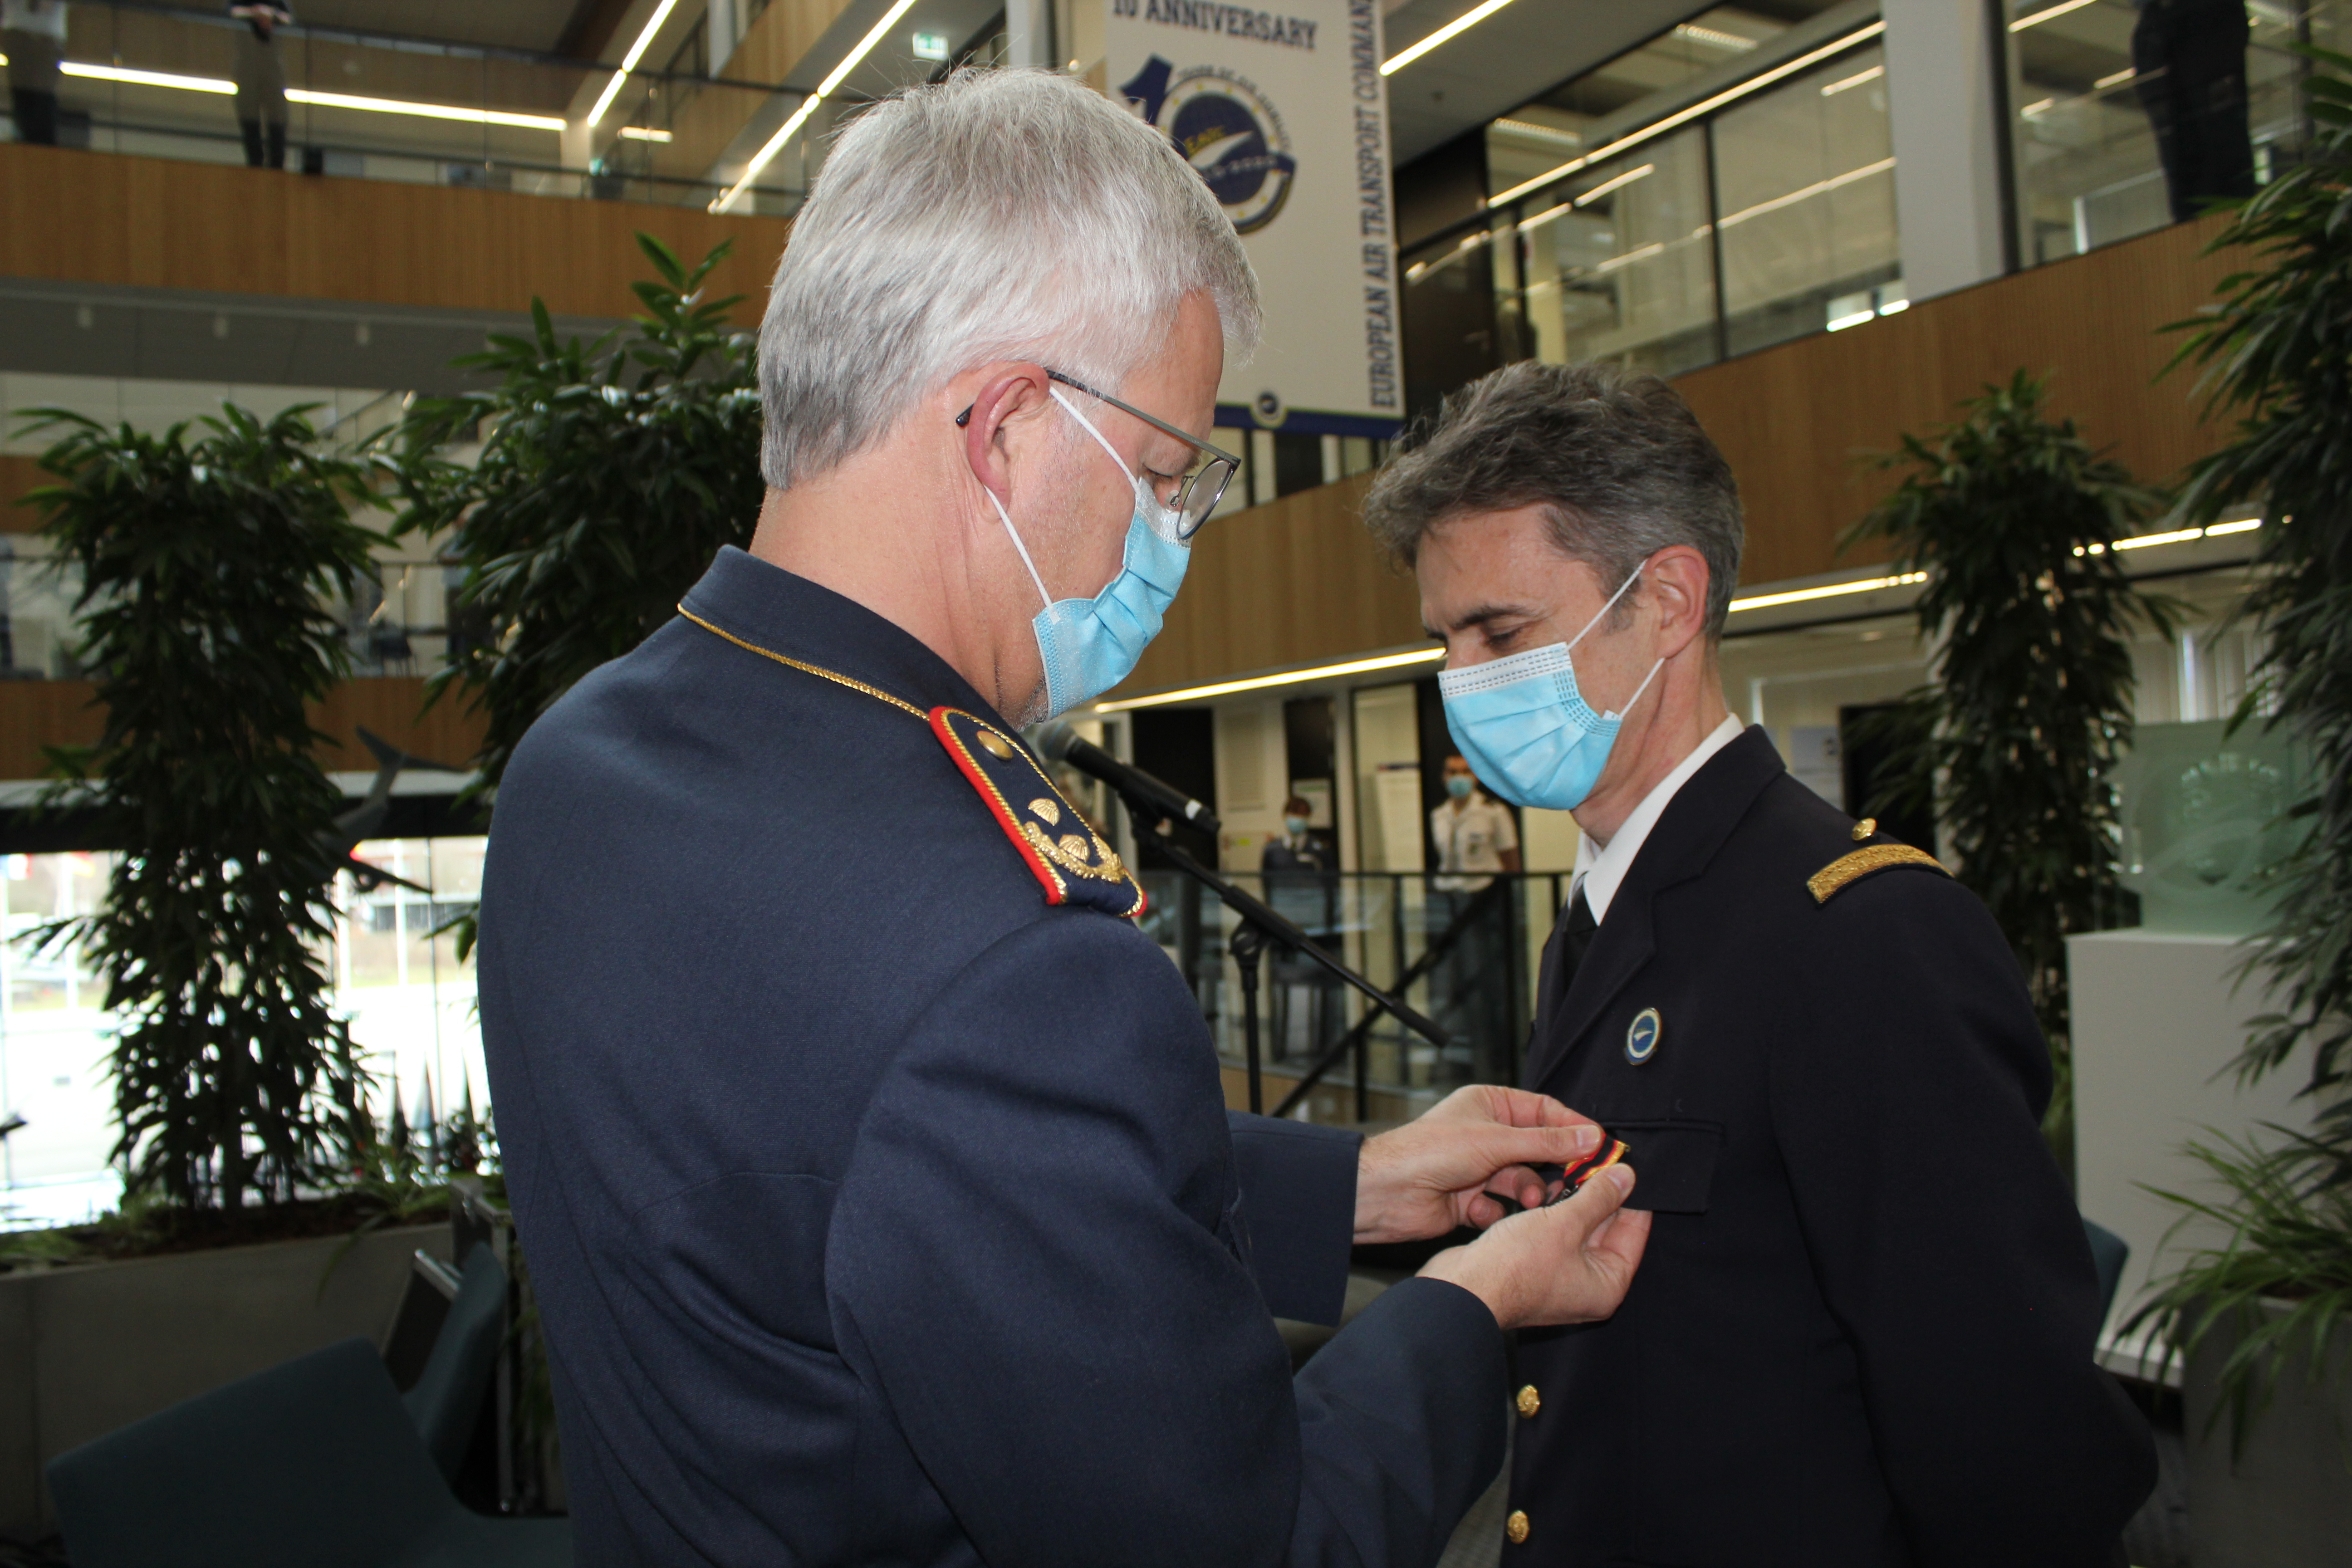 Commander EATC awards German decoration to French officer